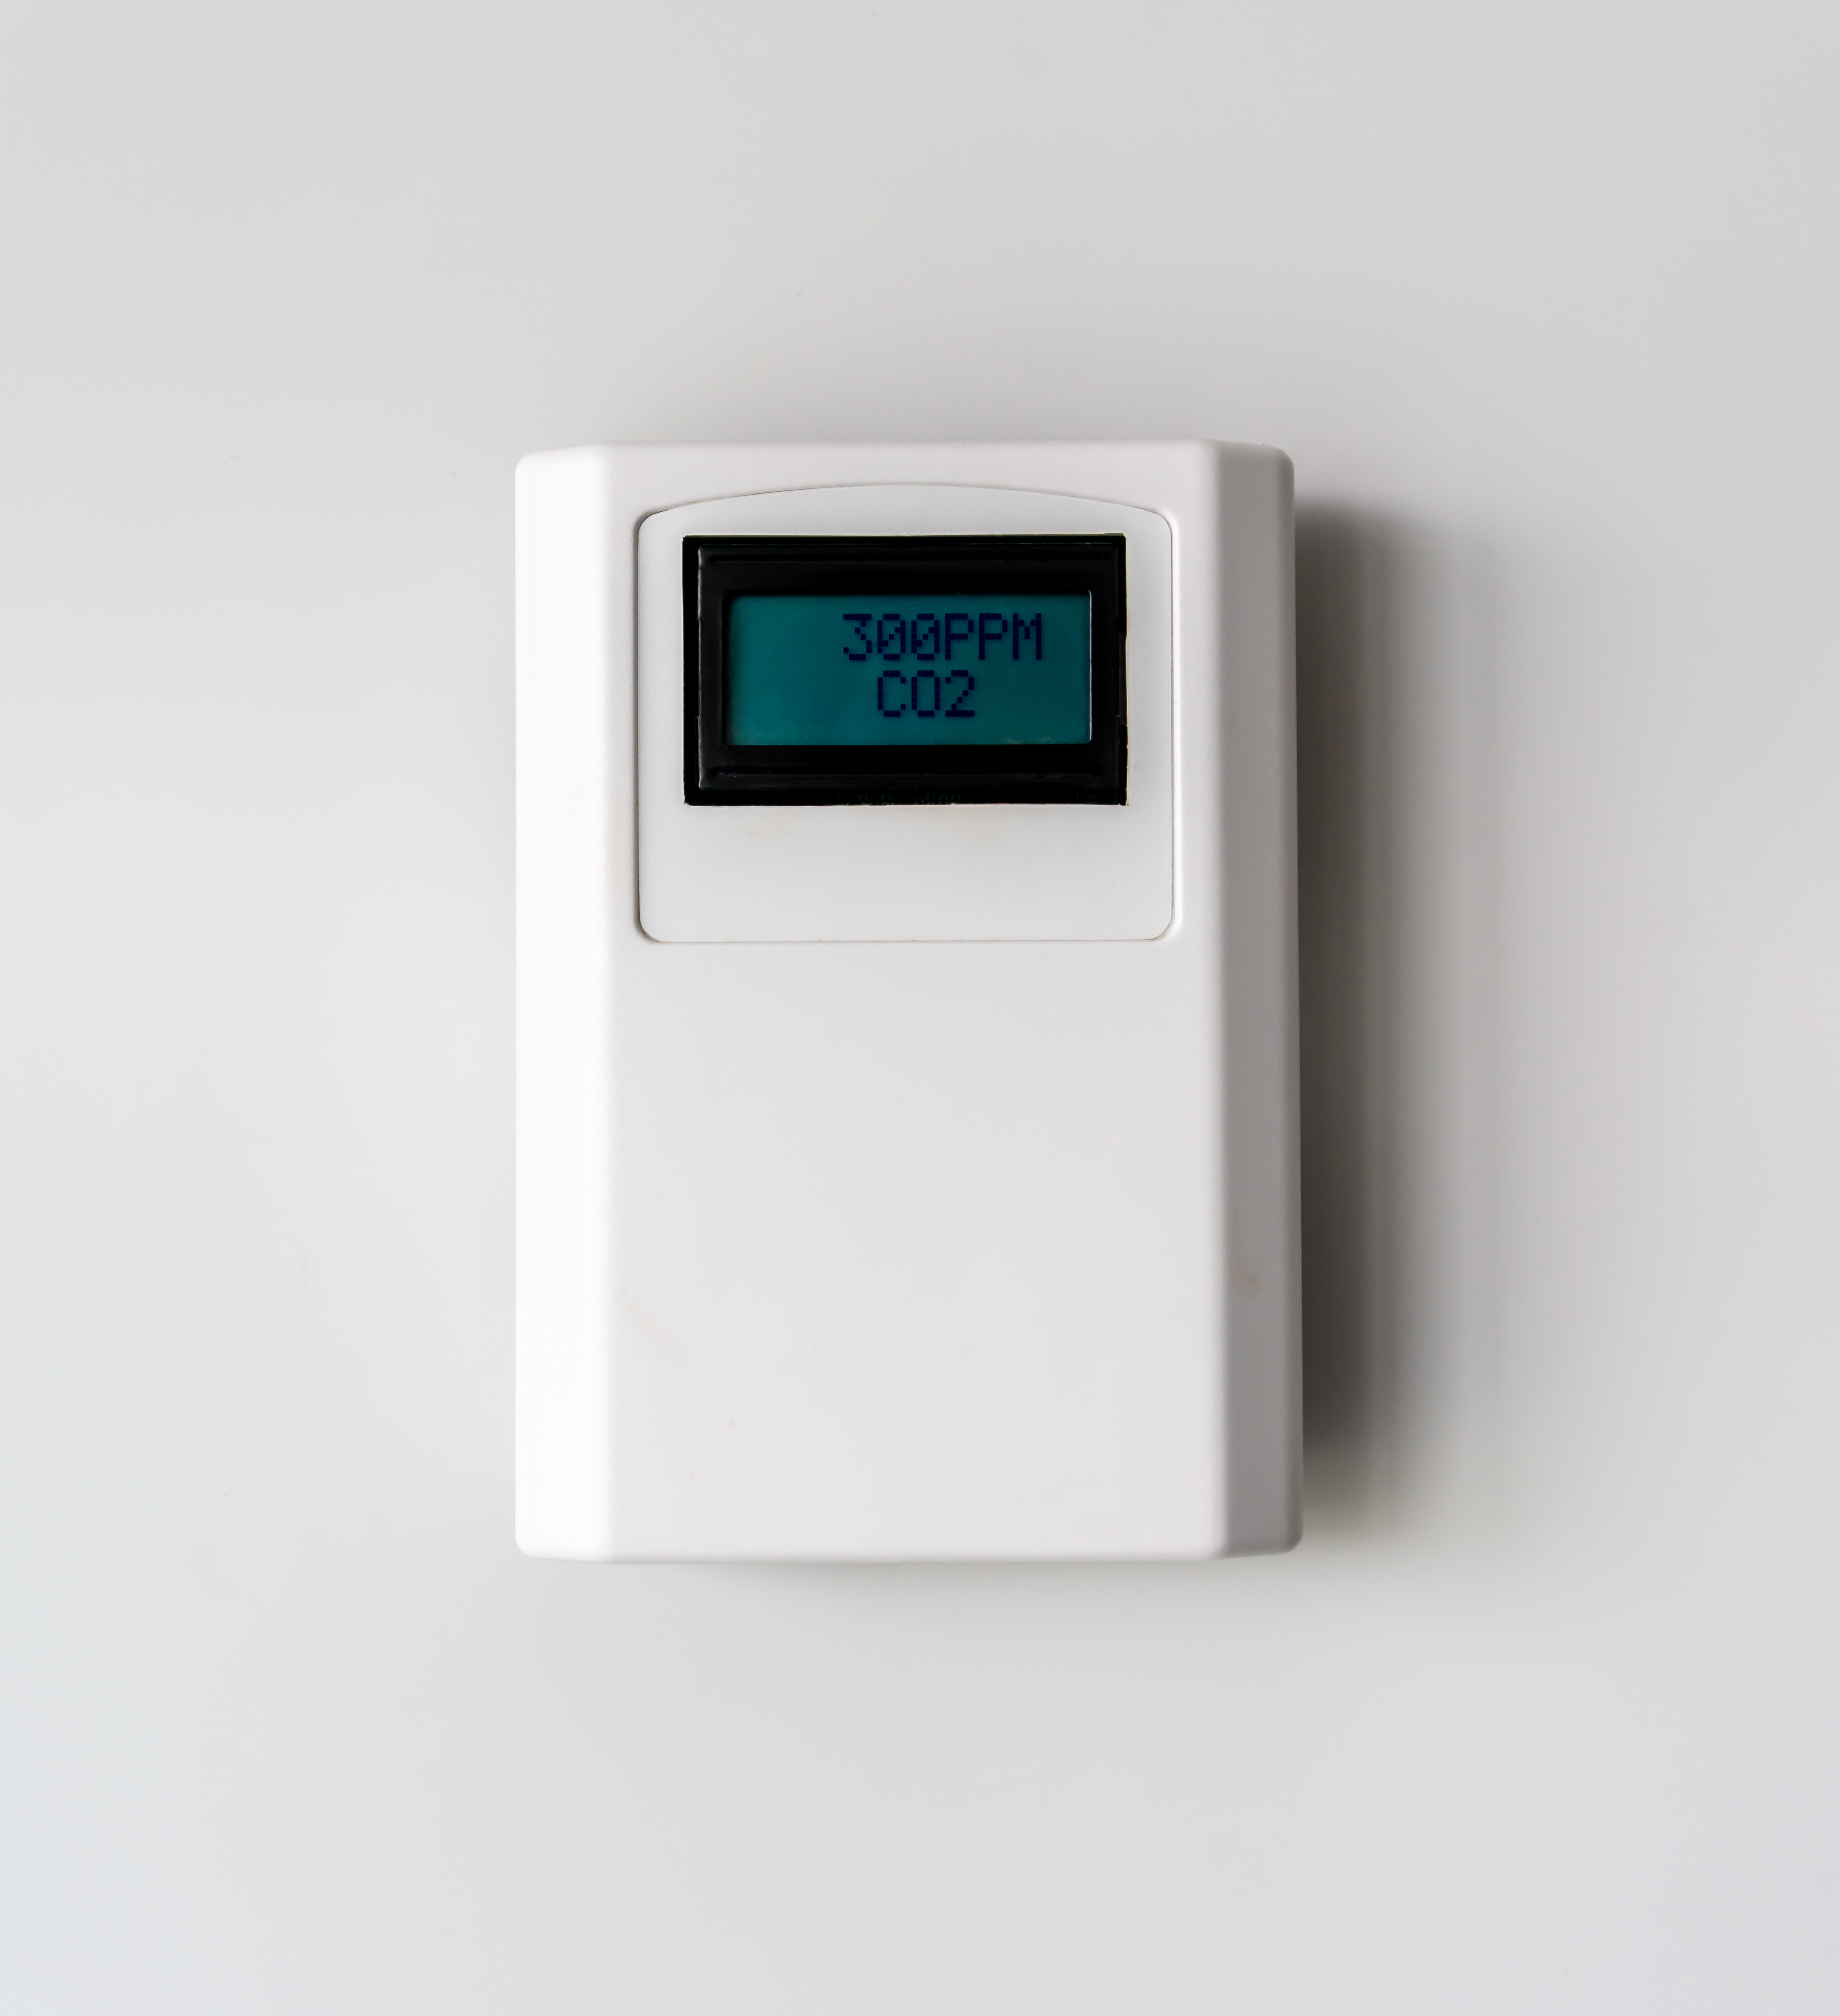 A carbon dioxide meter on a white wall shows a reading of 300 ppm.